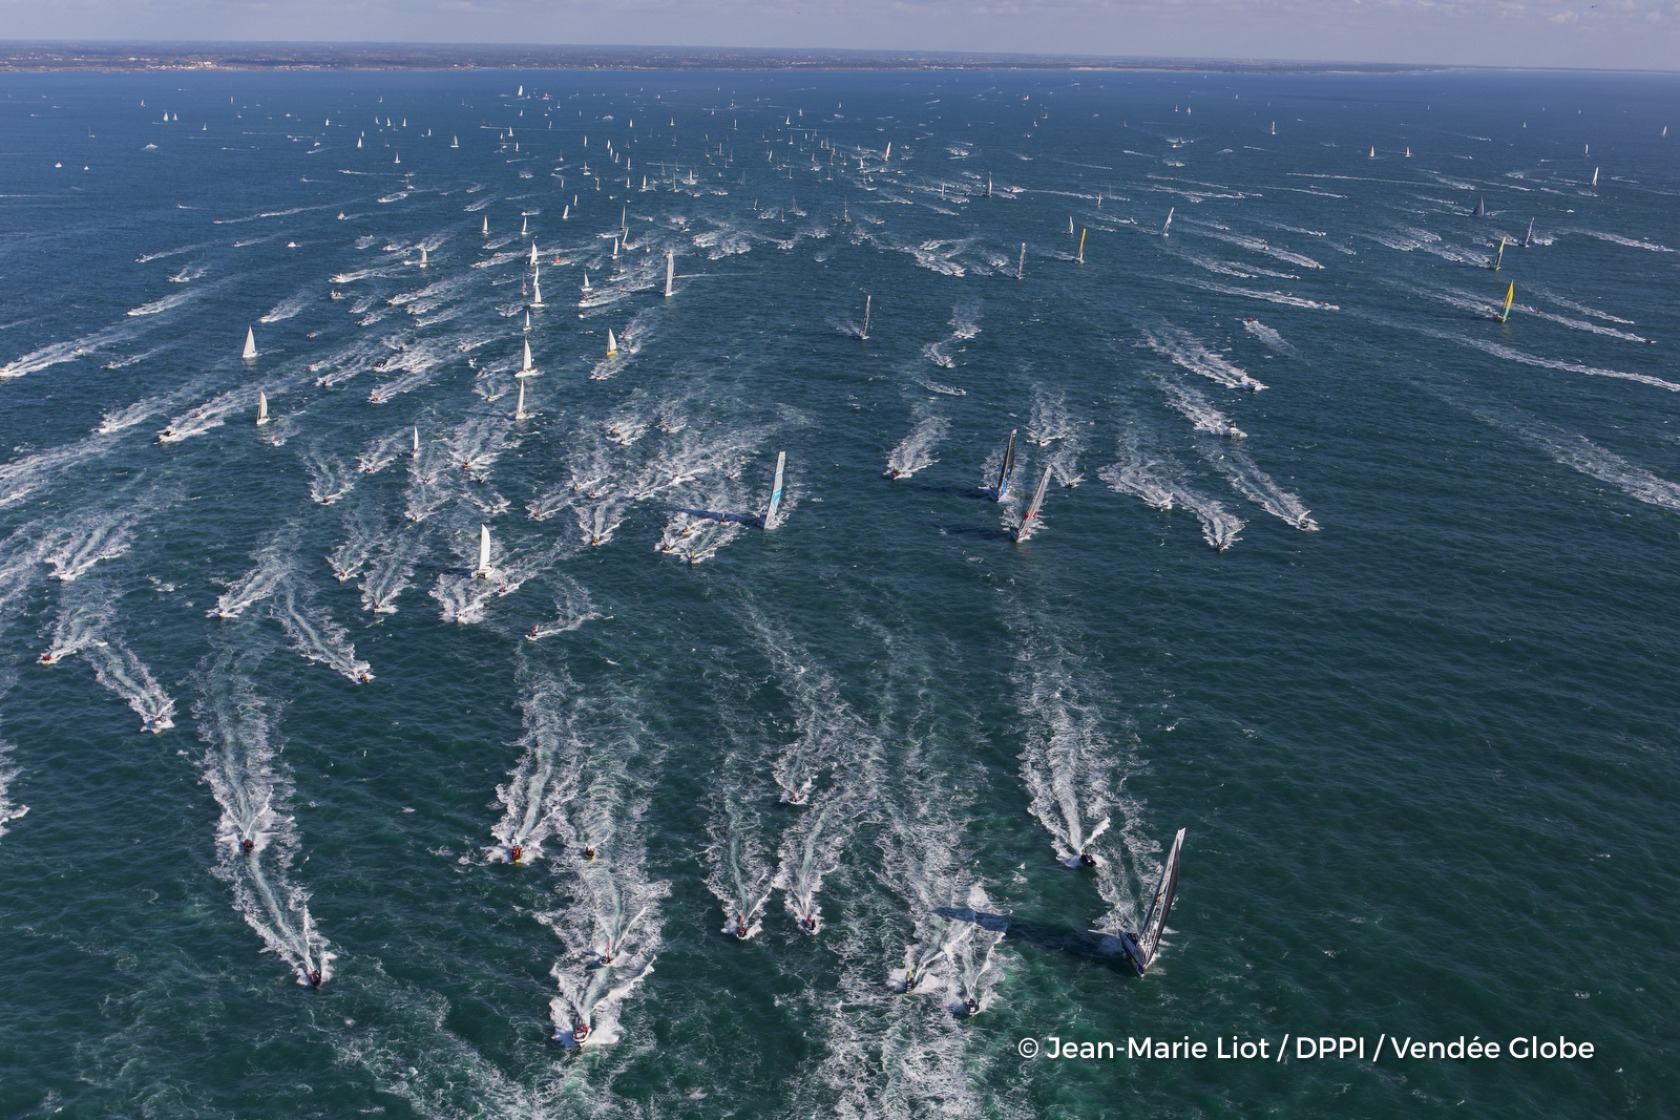 Fleet at start of the Vendee Globe, in Les Sables d'Olonne, France, on November 6th, 2016 - Photo Jean-Marie Liot / DPPI / Vendee GlobeFlotte au départ du Vendée Globe, aux Sables d'Olonne le 6 Novembre 2016 - Photo Jean-Marie Liot / DPPI / Vendee Globe